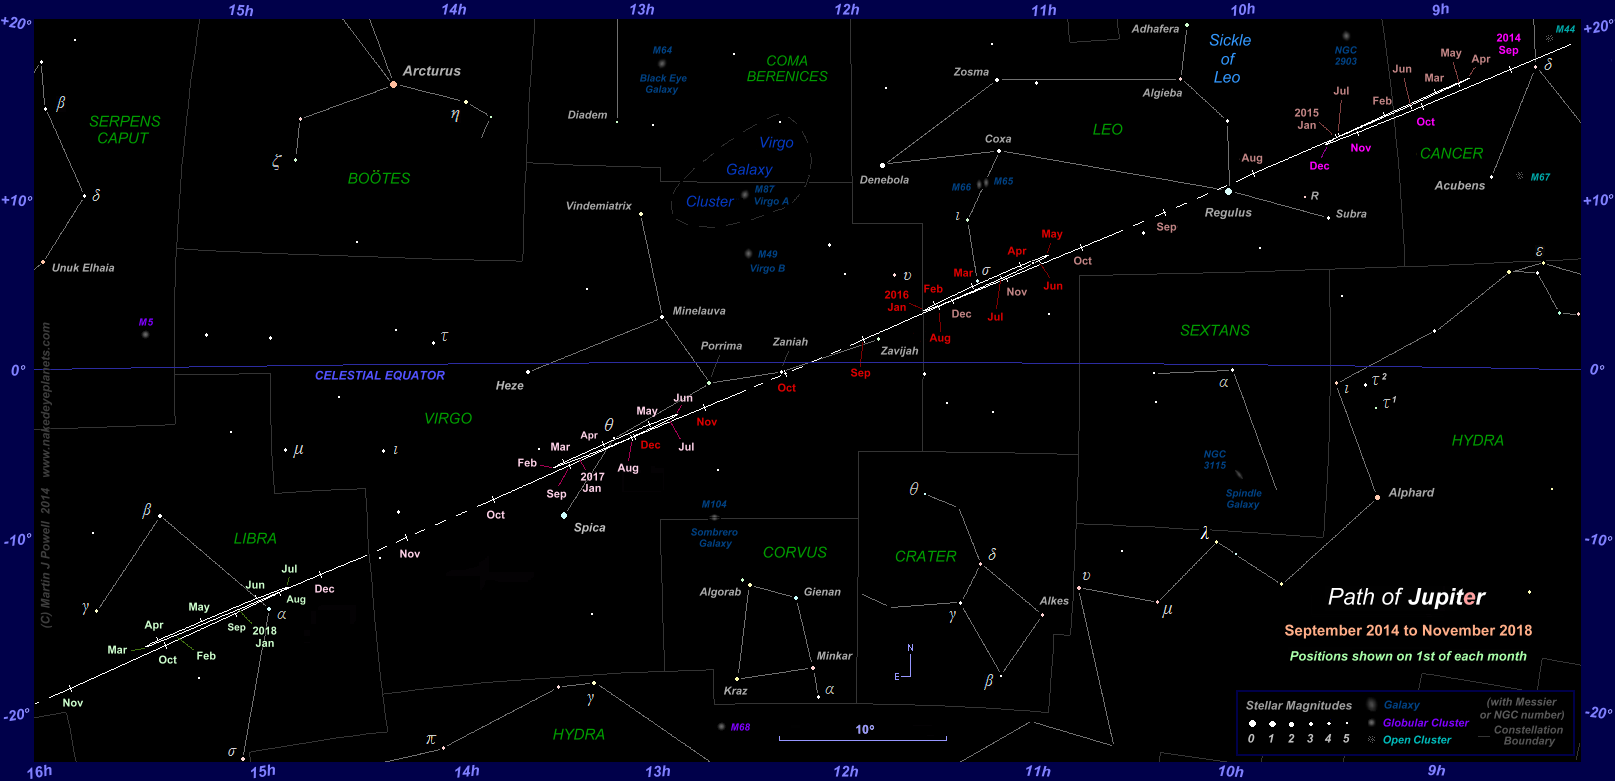 Where is Jupiter now? This star map shows the path of Jupiter through Cancer, Leo, Virgo and Libra from September 2014 to November 2018 (Copyright Martin J Powell, 2014)